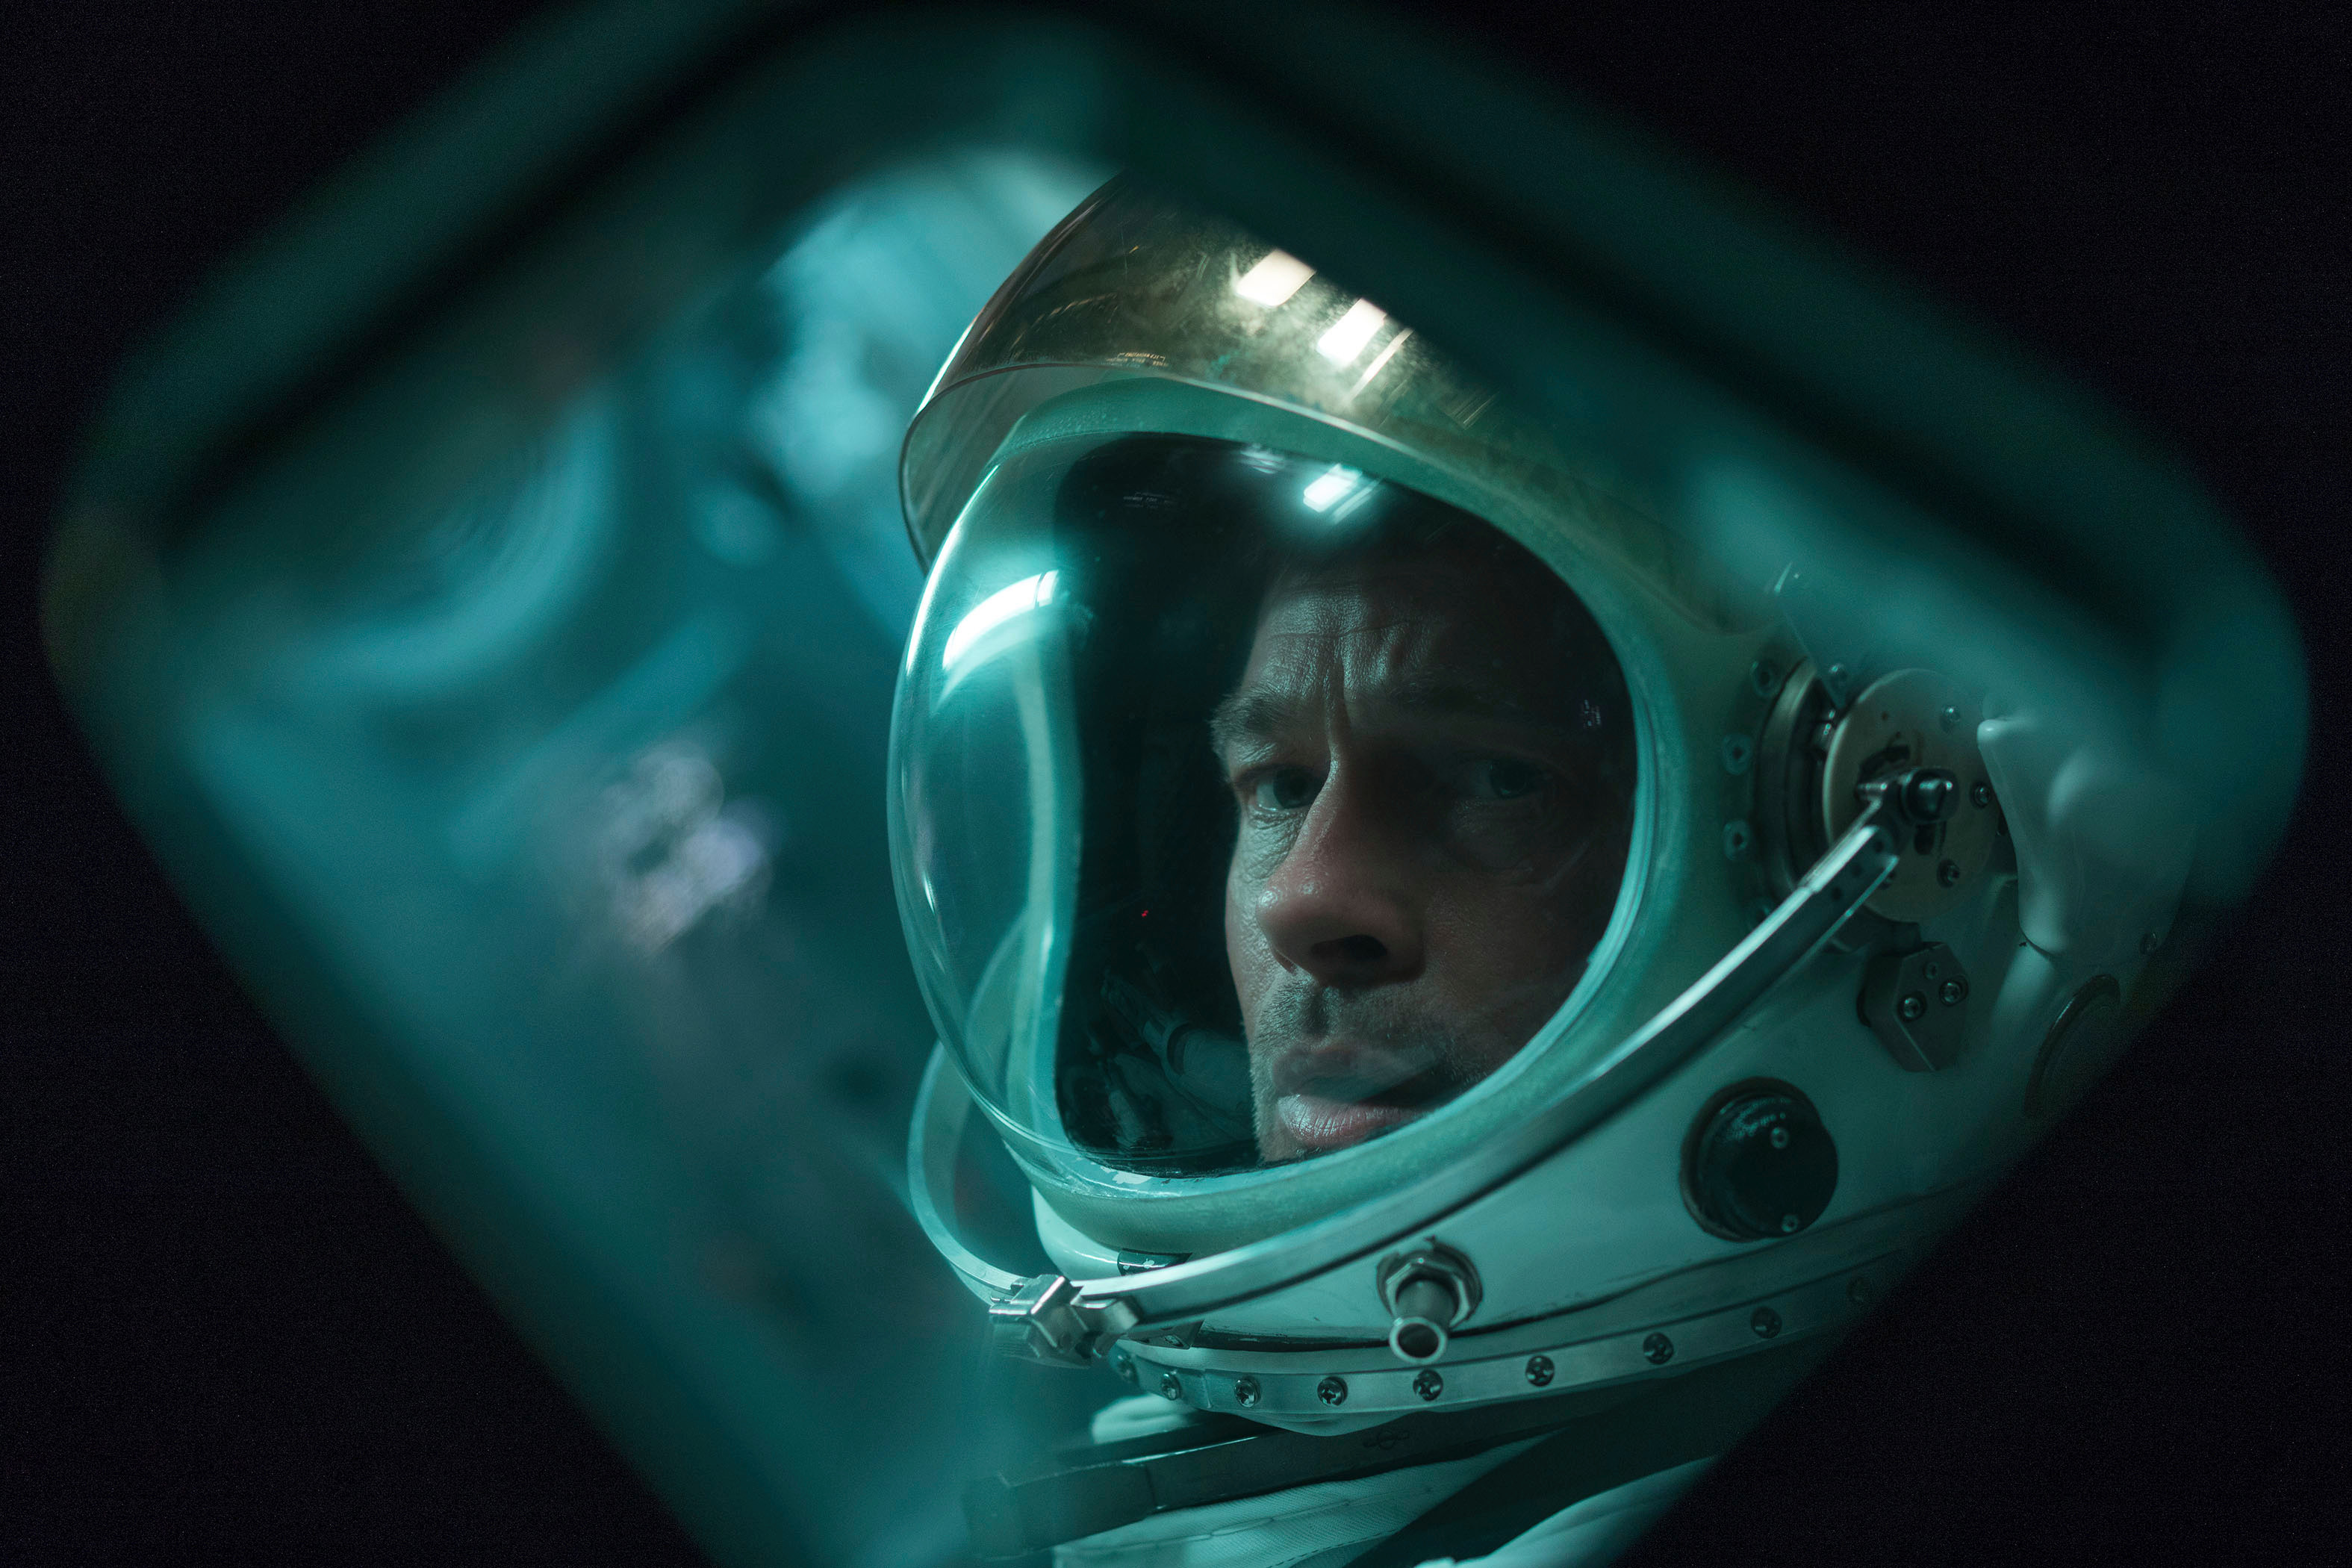 [Movie Review] Brad Pitt is so Alone in Ad Astra (2019), but it brings out the Realism in Space Travel - Alvinology